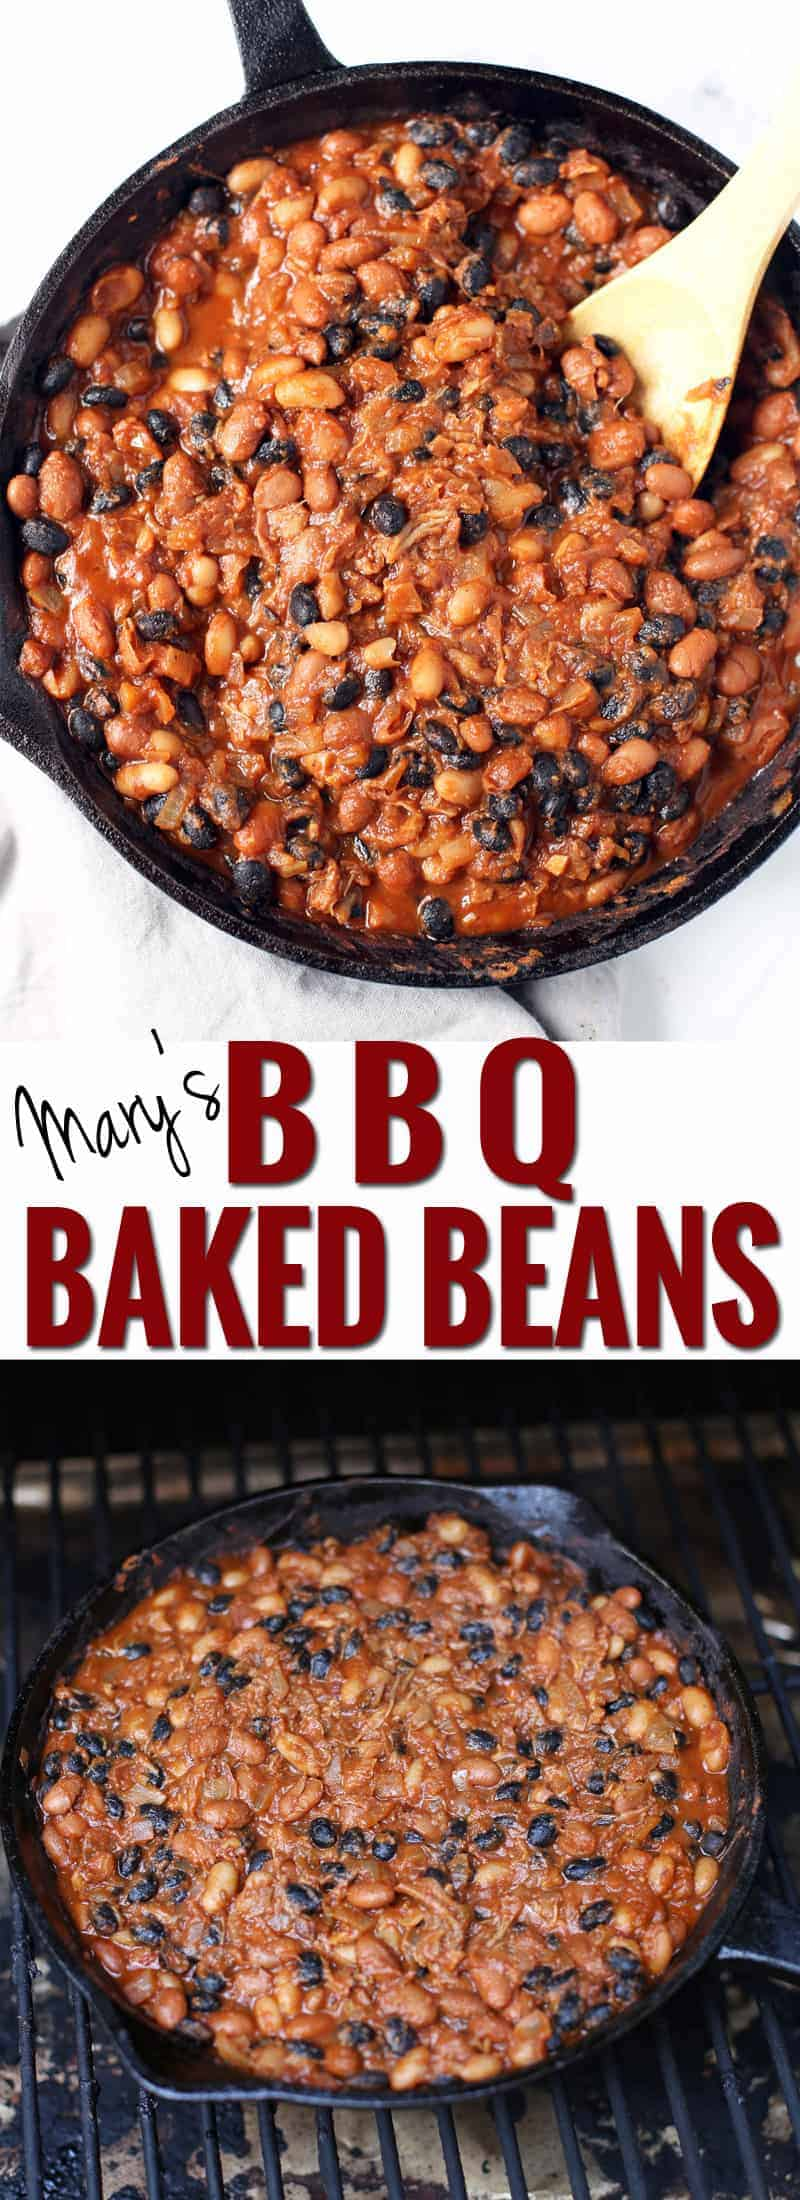 Mary's easy BBQ Baked Beans cooked on a Smoker. Comforting, slightly sweet, mildly smoky, rich, meaty, and totally indulgent!